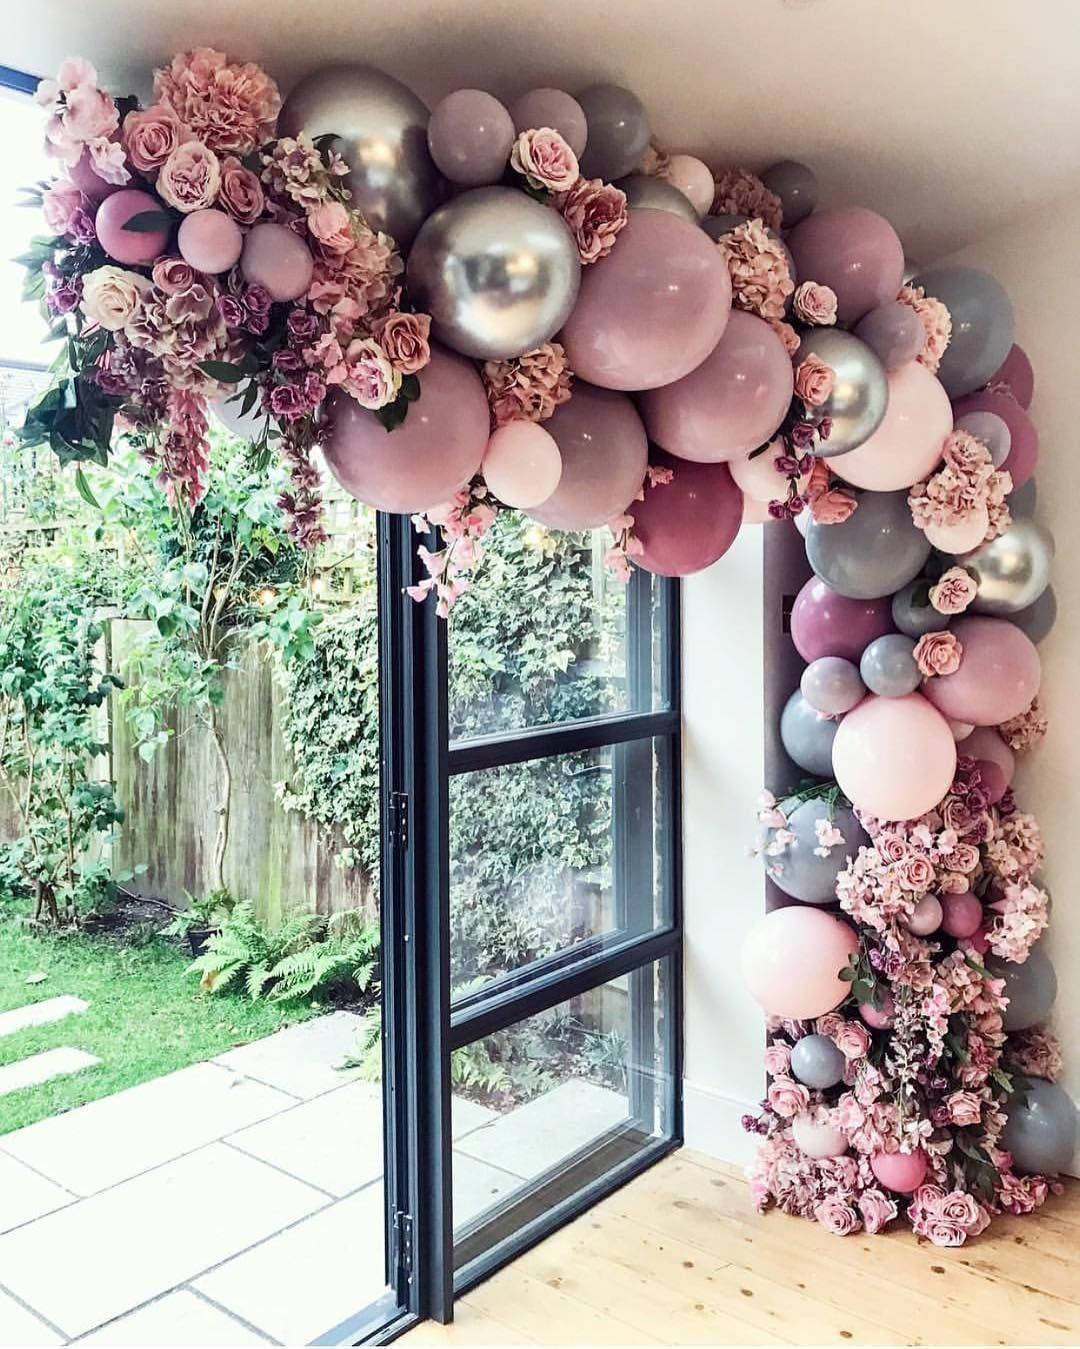 Romwe Com On Instagram Amazing Balloon Decorations Source